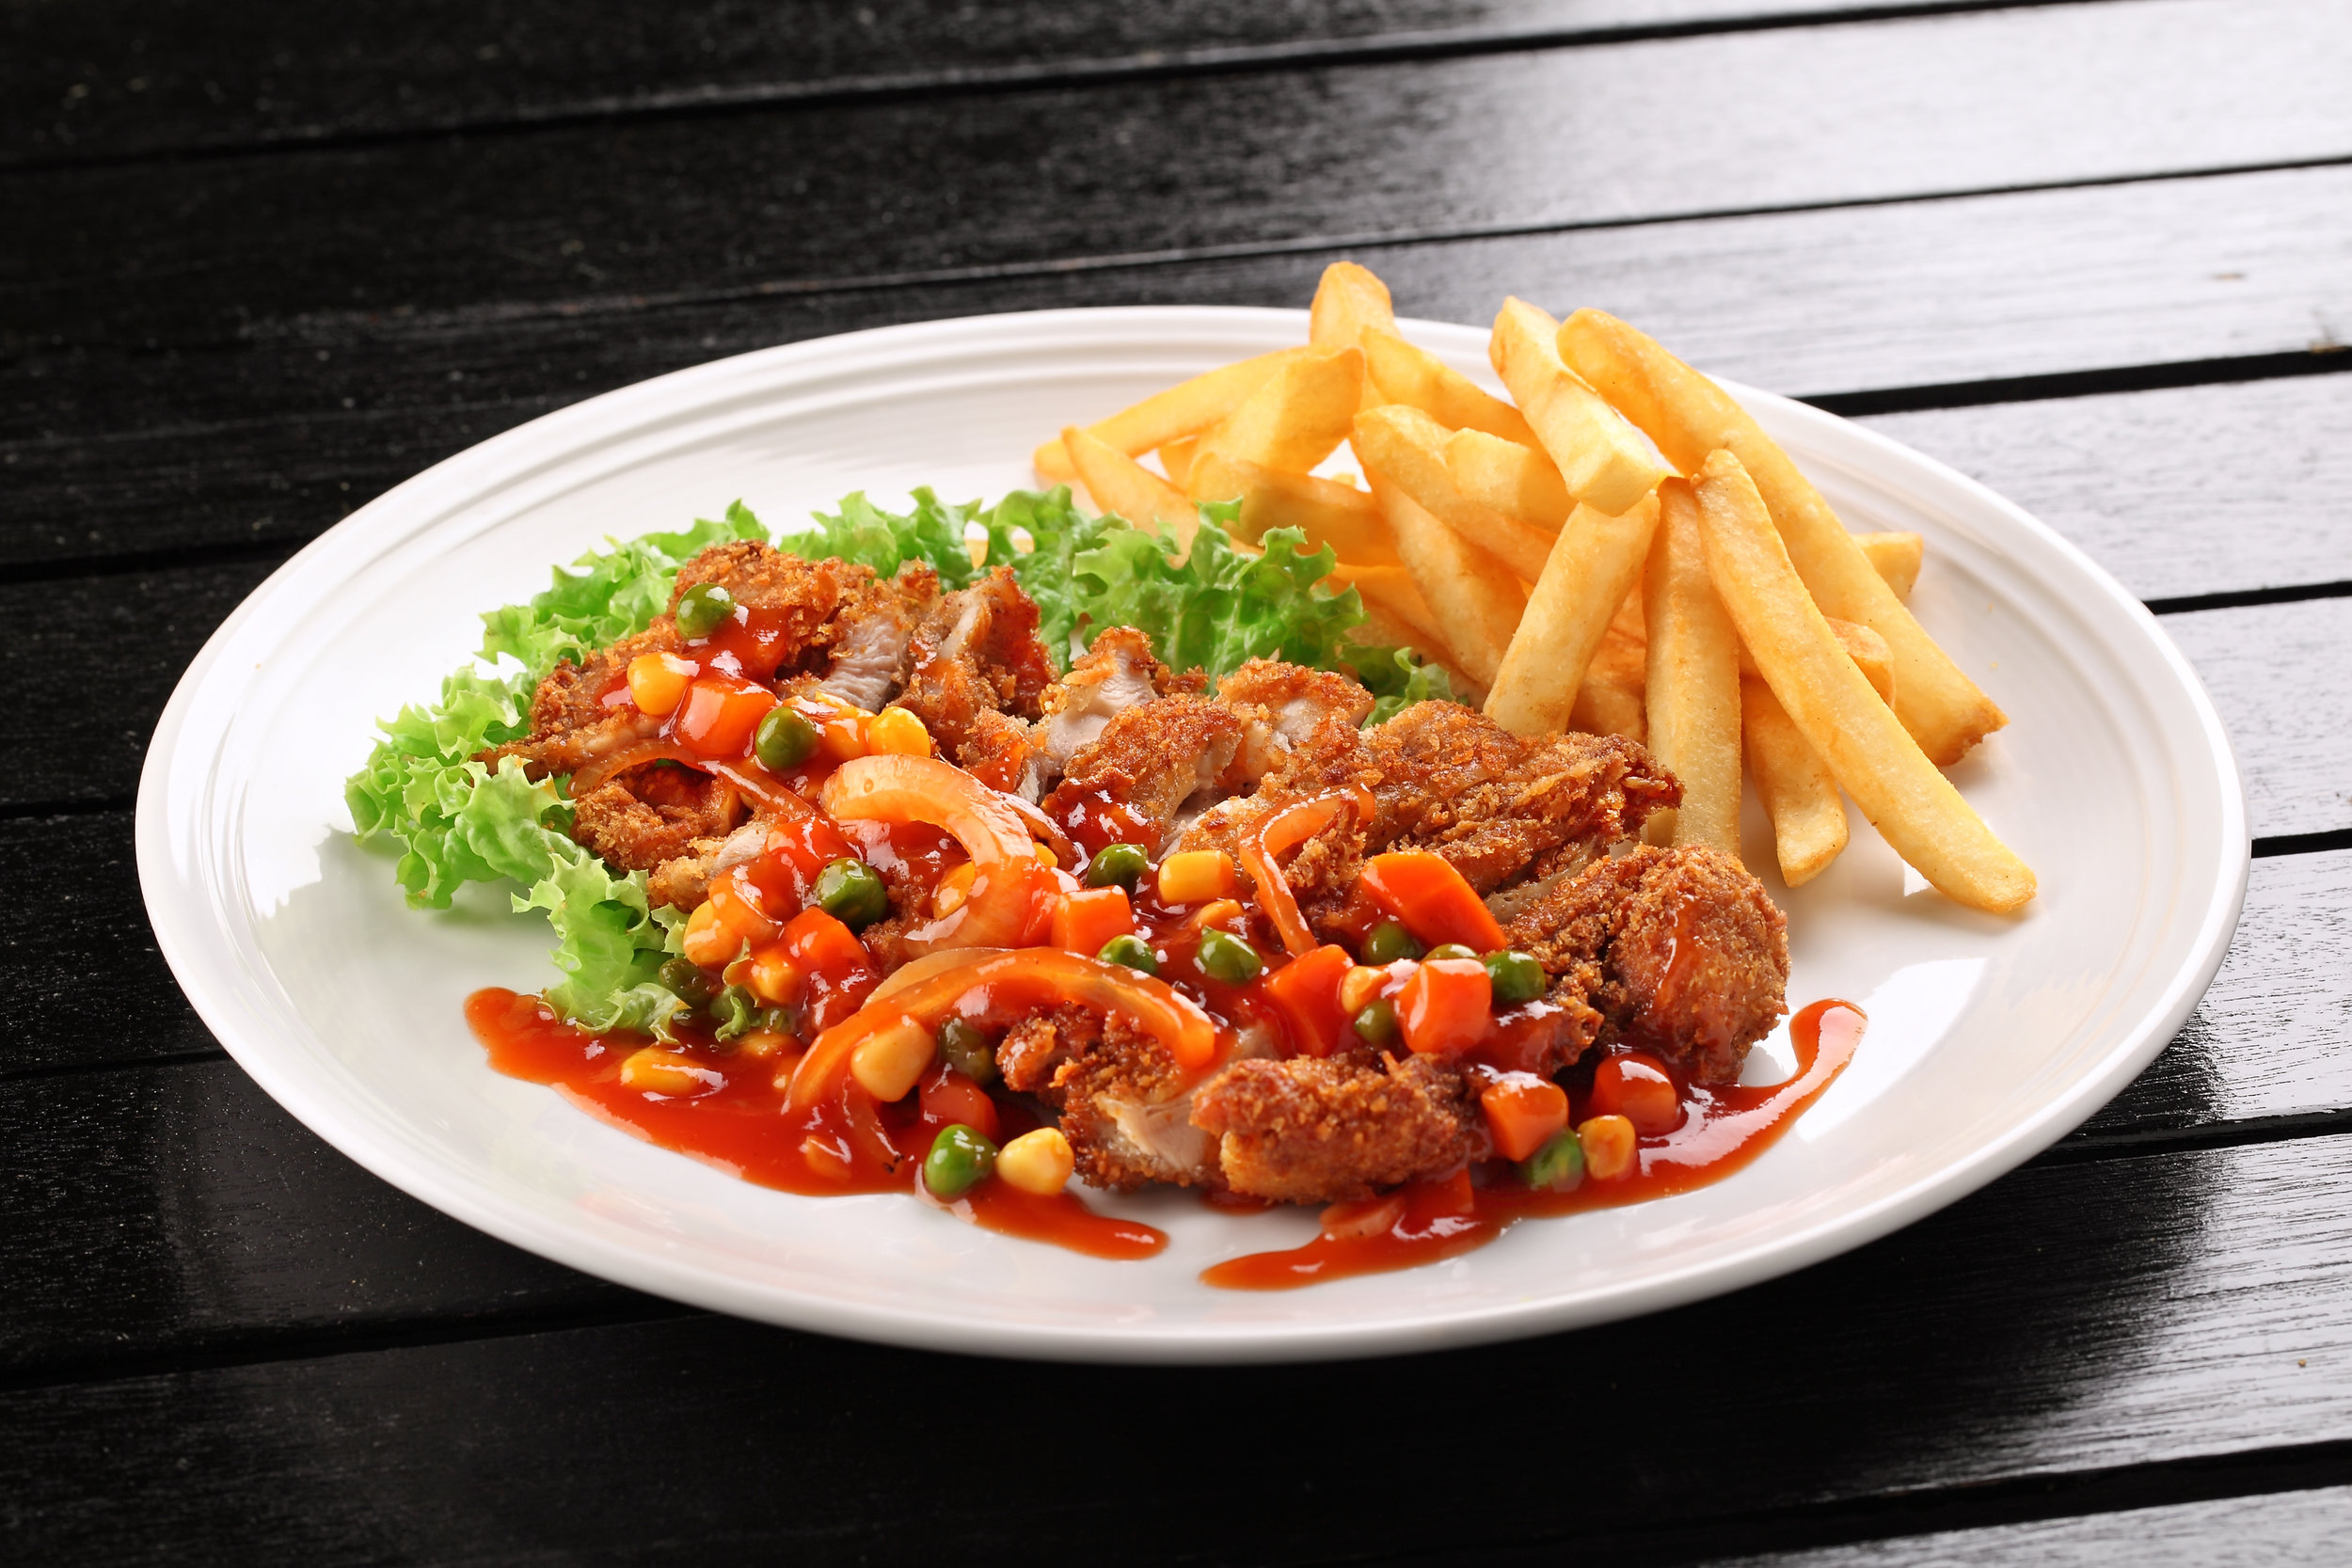 Hainanese Chicken Cutlet with Fries 02.jpg